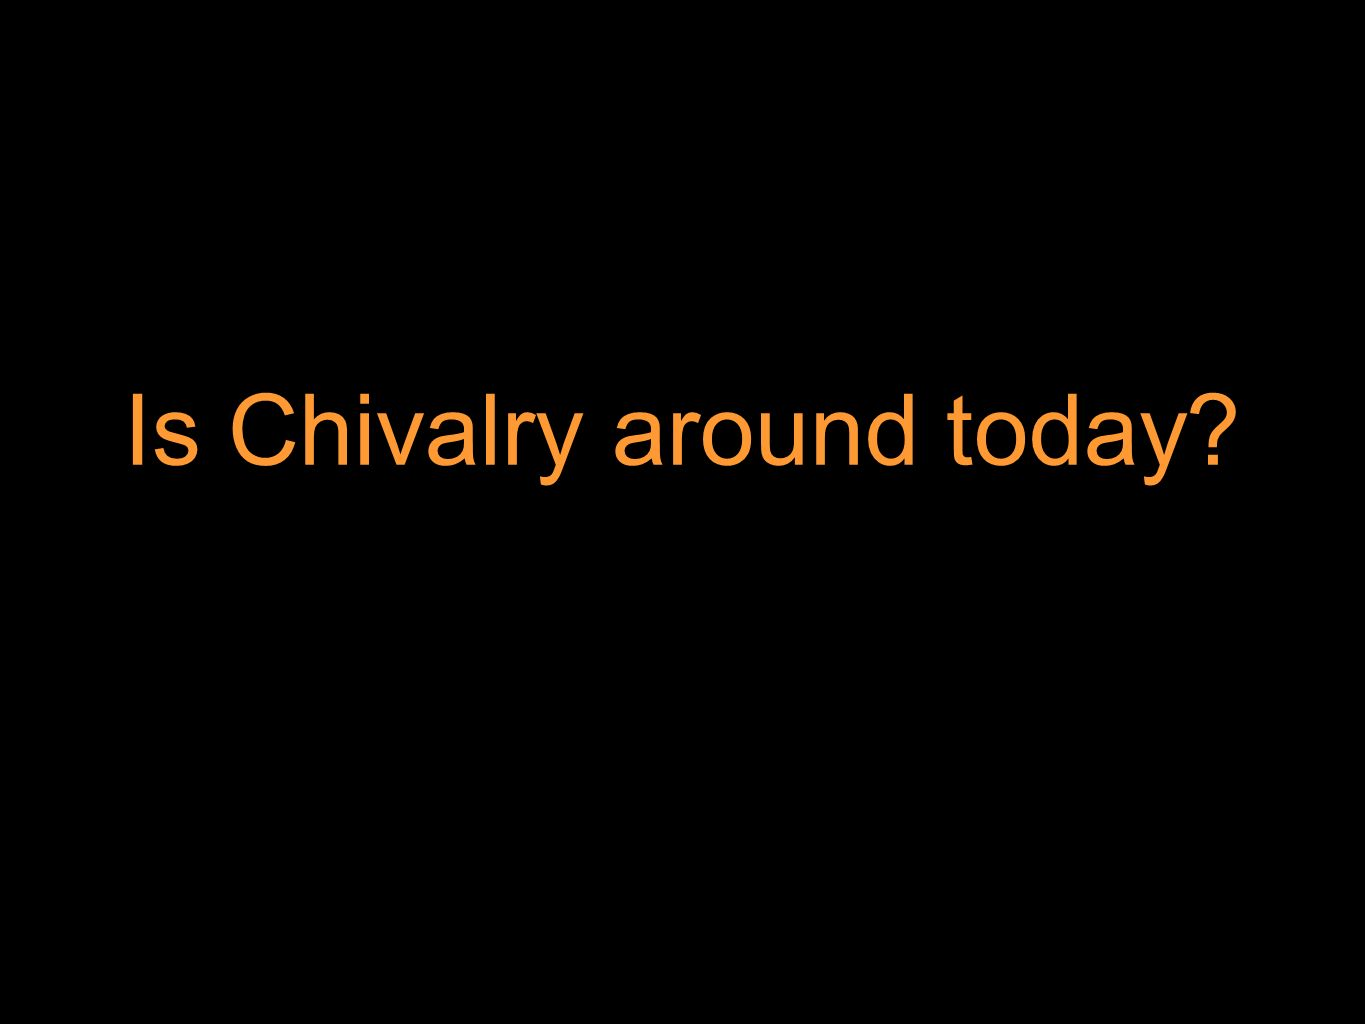 Is Chivalry around today